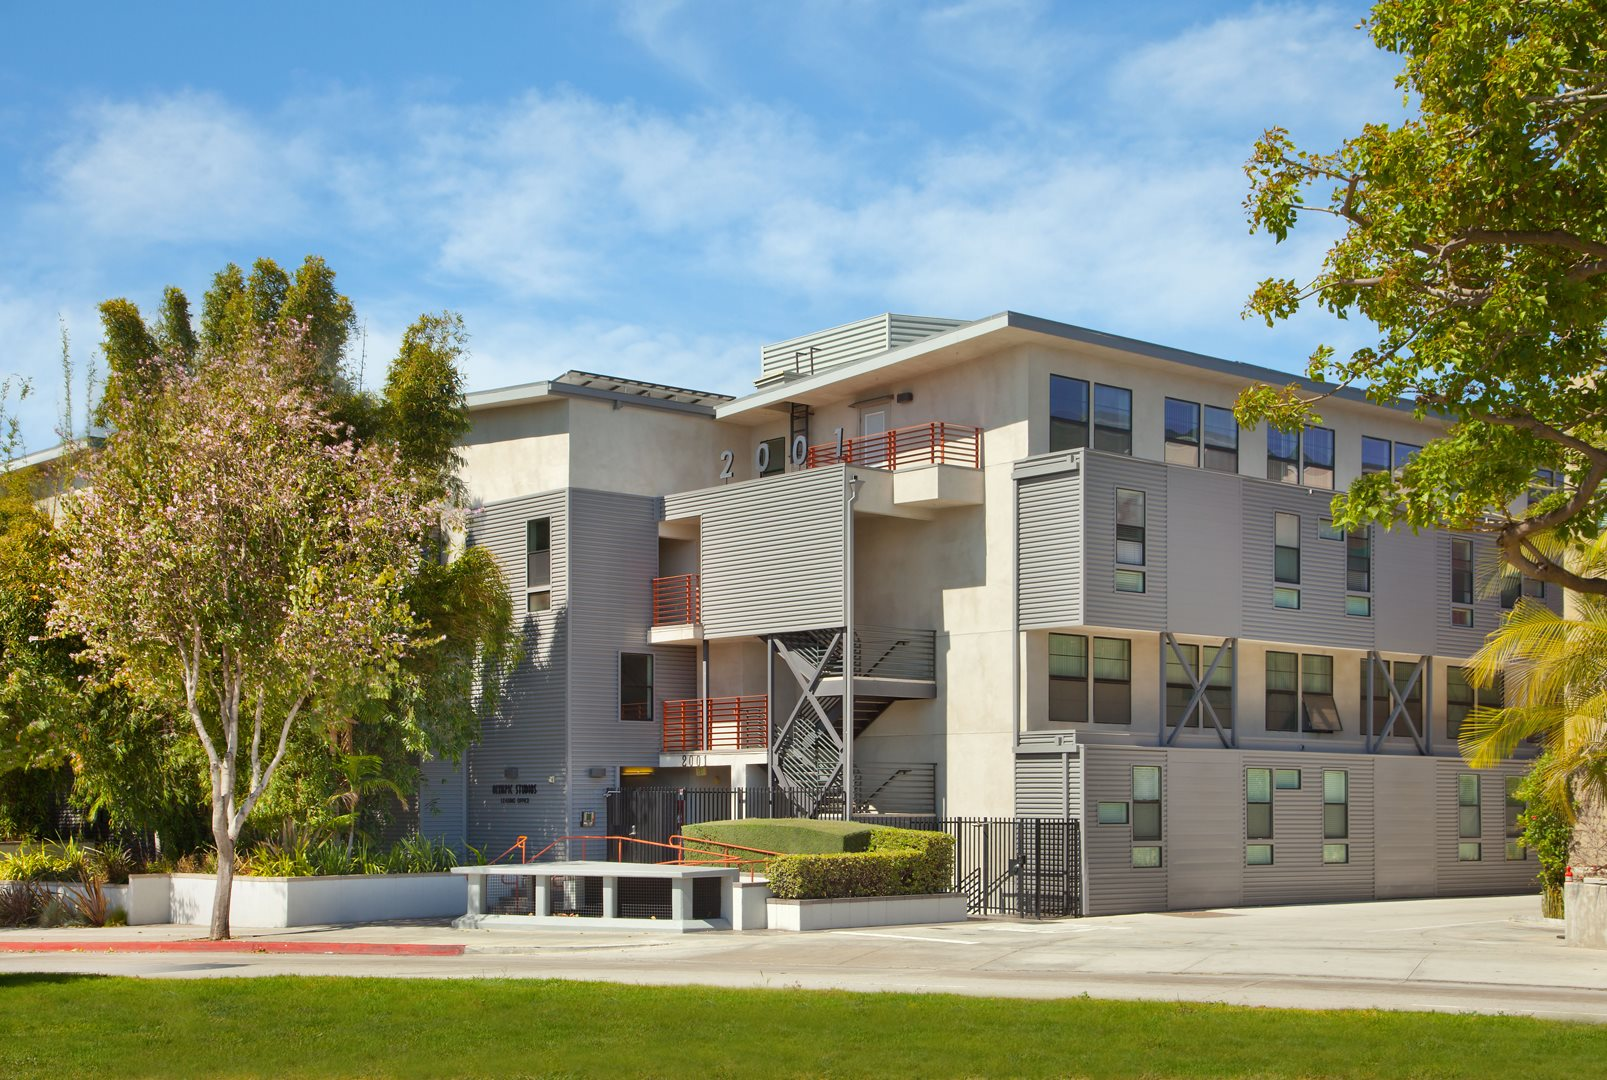 Santa-Monica-Affordable-Apartments-SAMO-Apartments-Olympic-Studios-Exterior-Facade